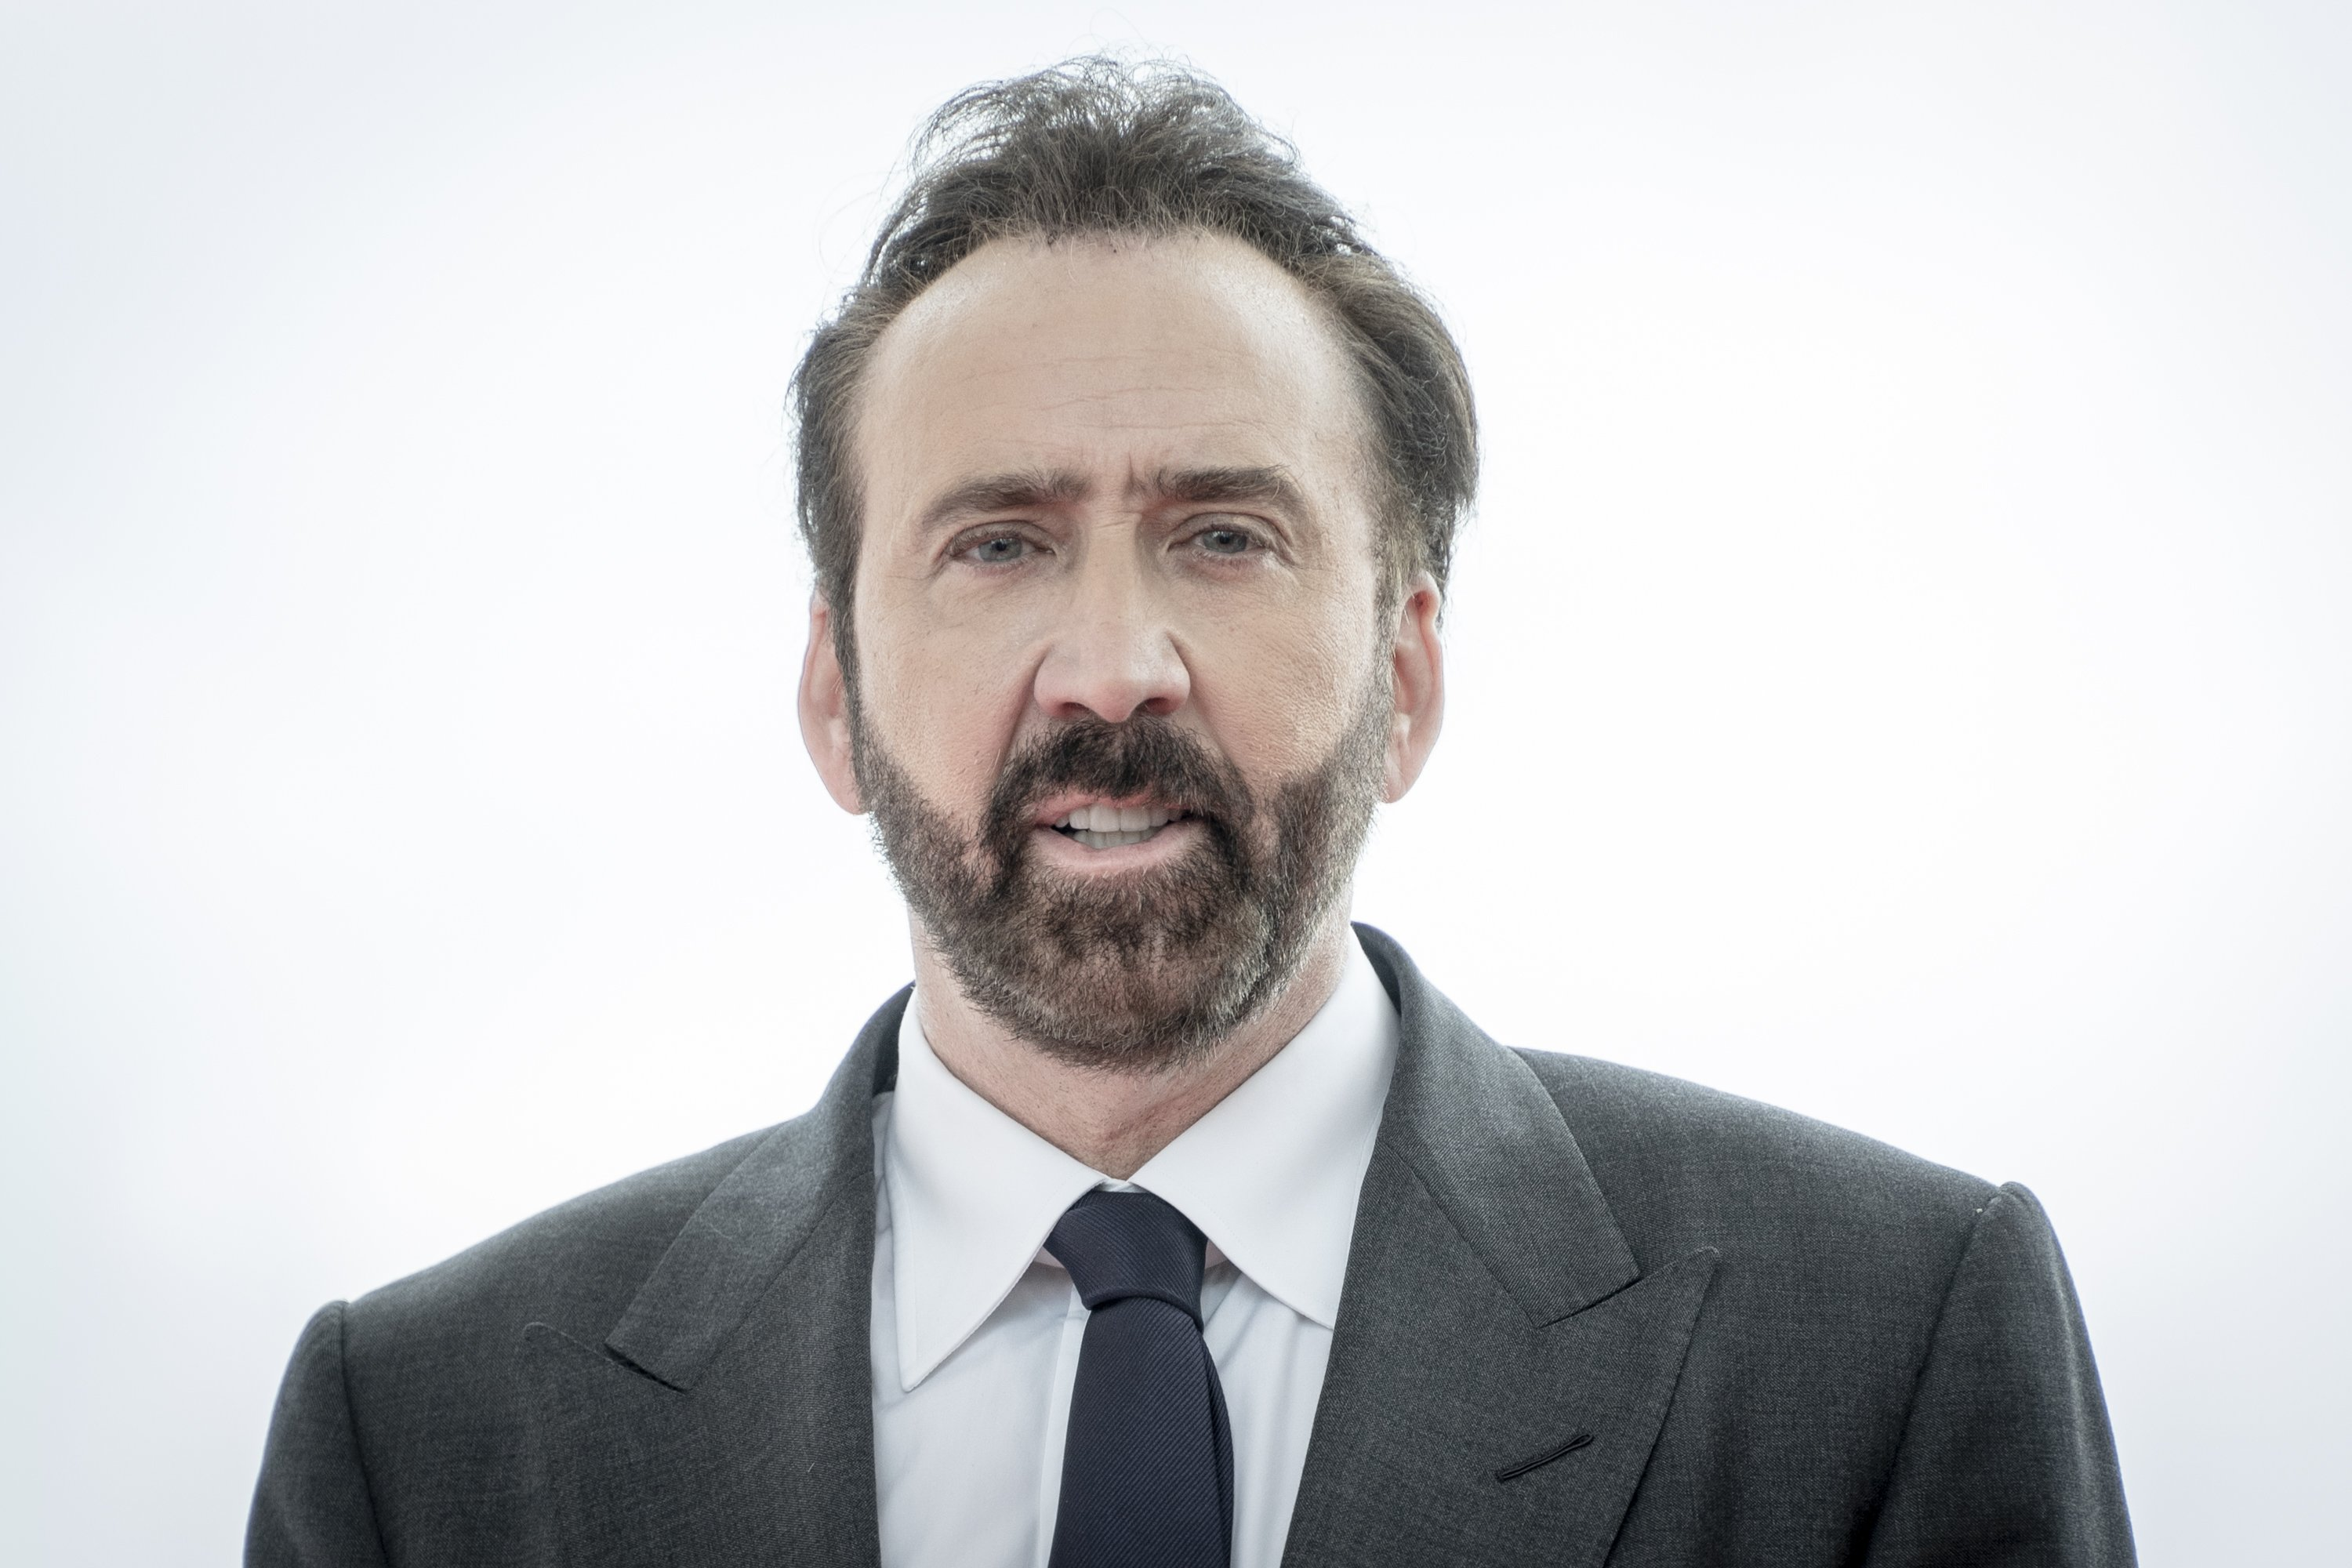 Nicolas Cage poses during a photocall on day three of the Sitges Film Festival 2018 on October 6, 2018, in Sitges, Spain. | Source: Getty Images.